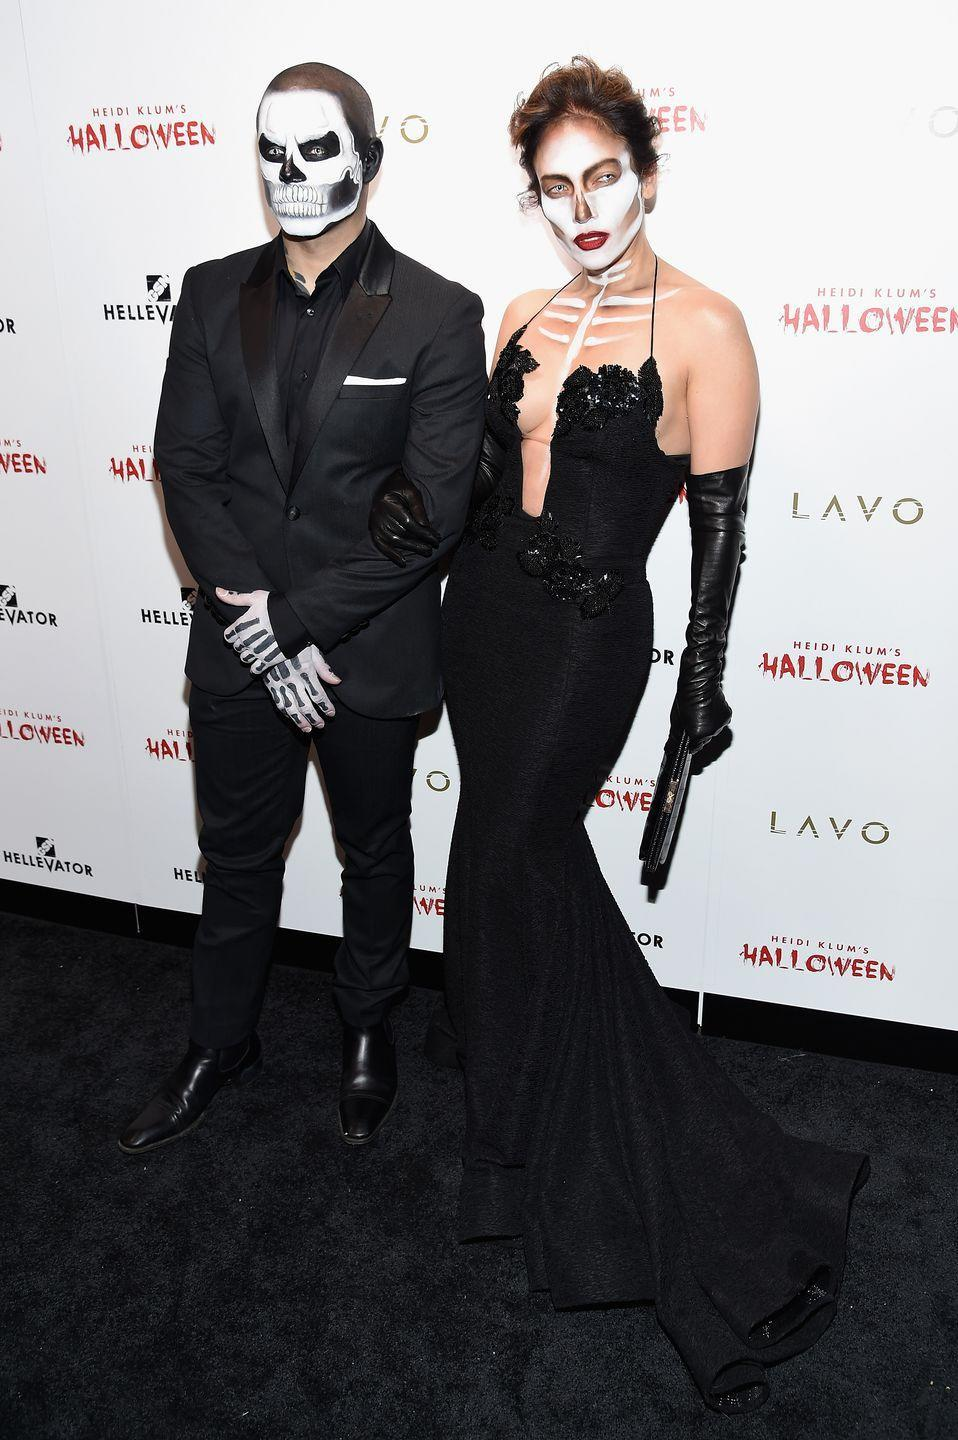 <p>The actress and Casper Smart wore all black formalwear paired with elaborate face makeup for an unforgettable Halloween look. This is what we call spooky chic.</p>